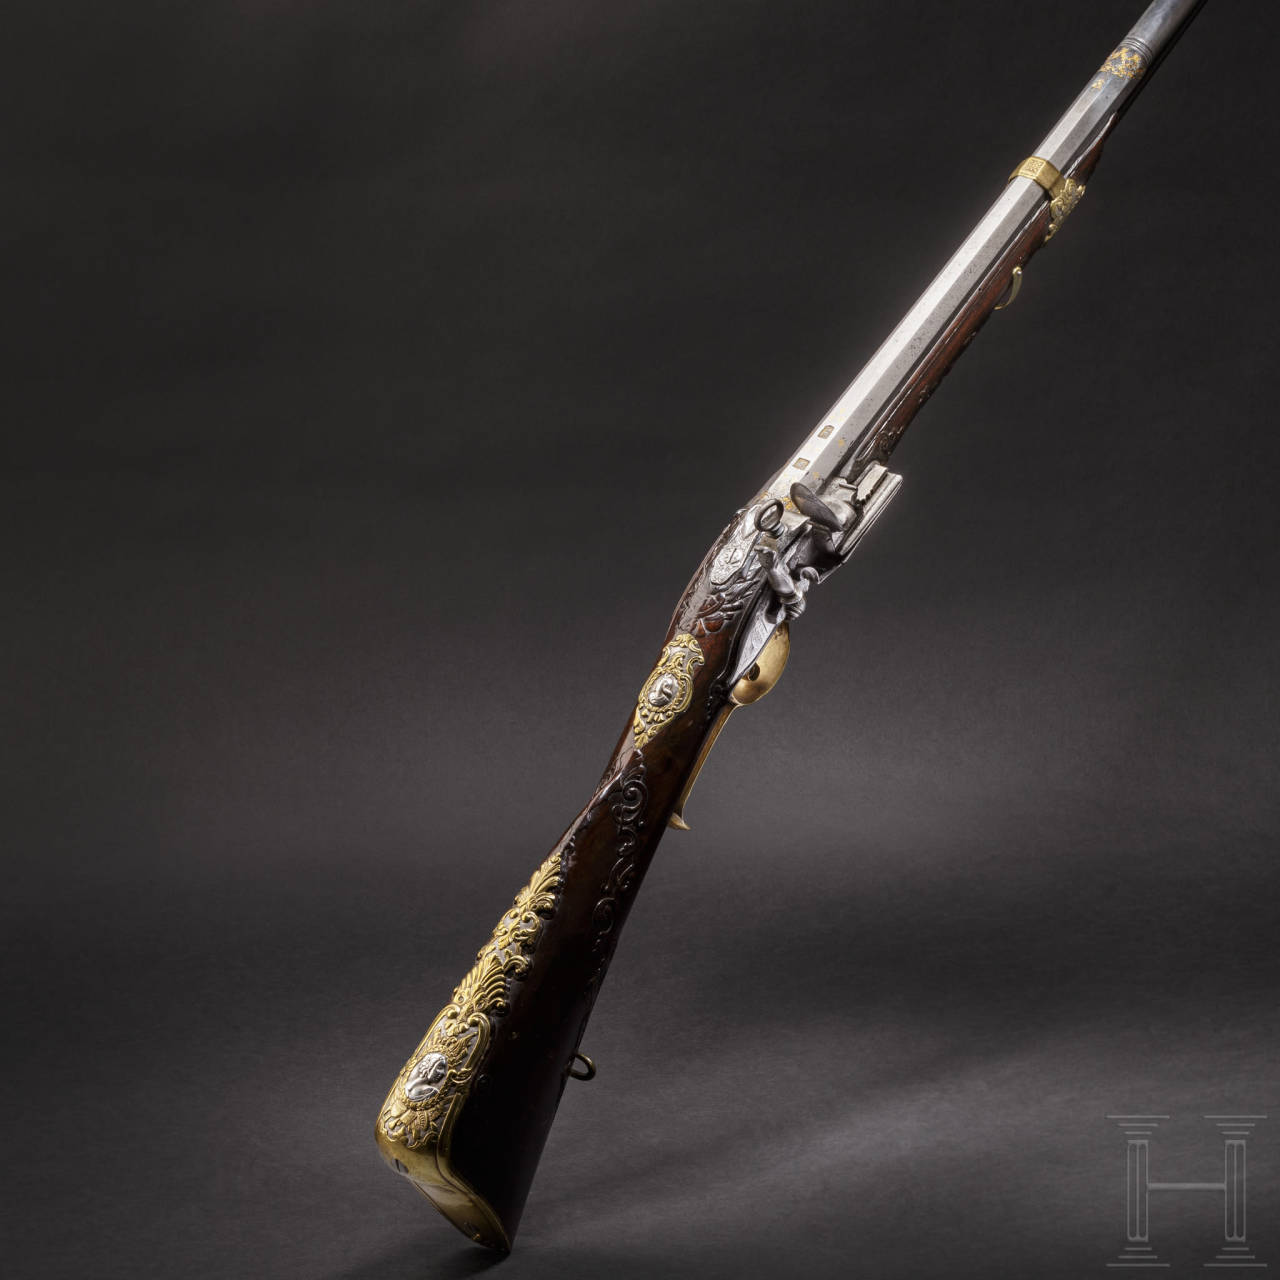 A deluxe miquelet rifle from a noble estate, Thomaso Contino of Pinerolo, circa 1720